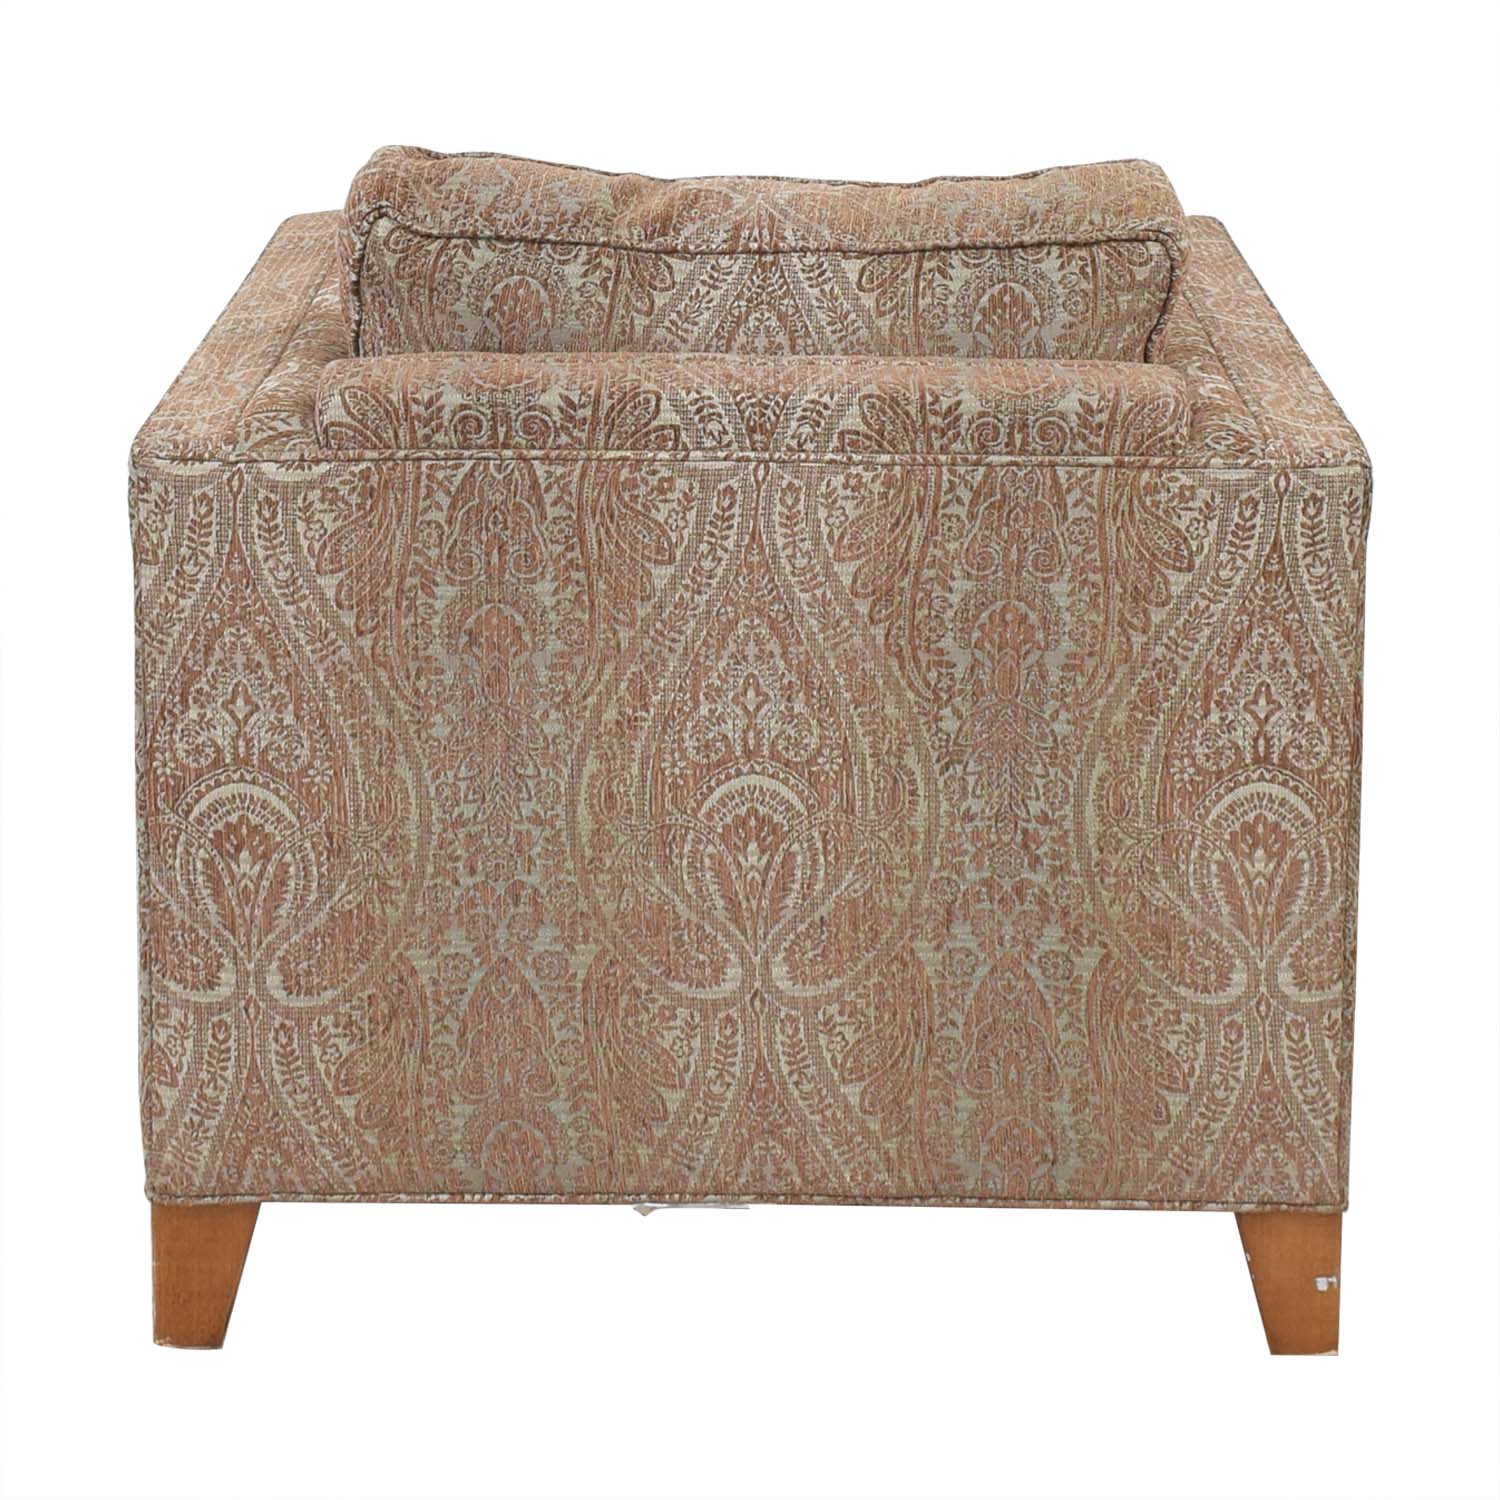 Crate & Barrel Crate & Barrel by Mitchell Gold + Bob Williams Paisley Print Club Chair price